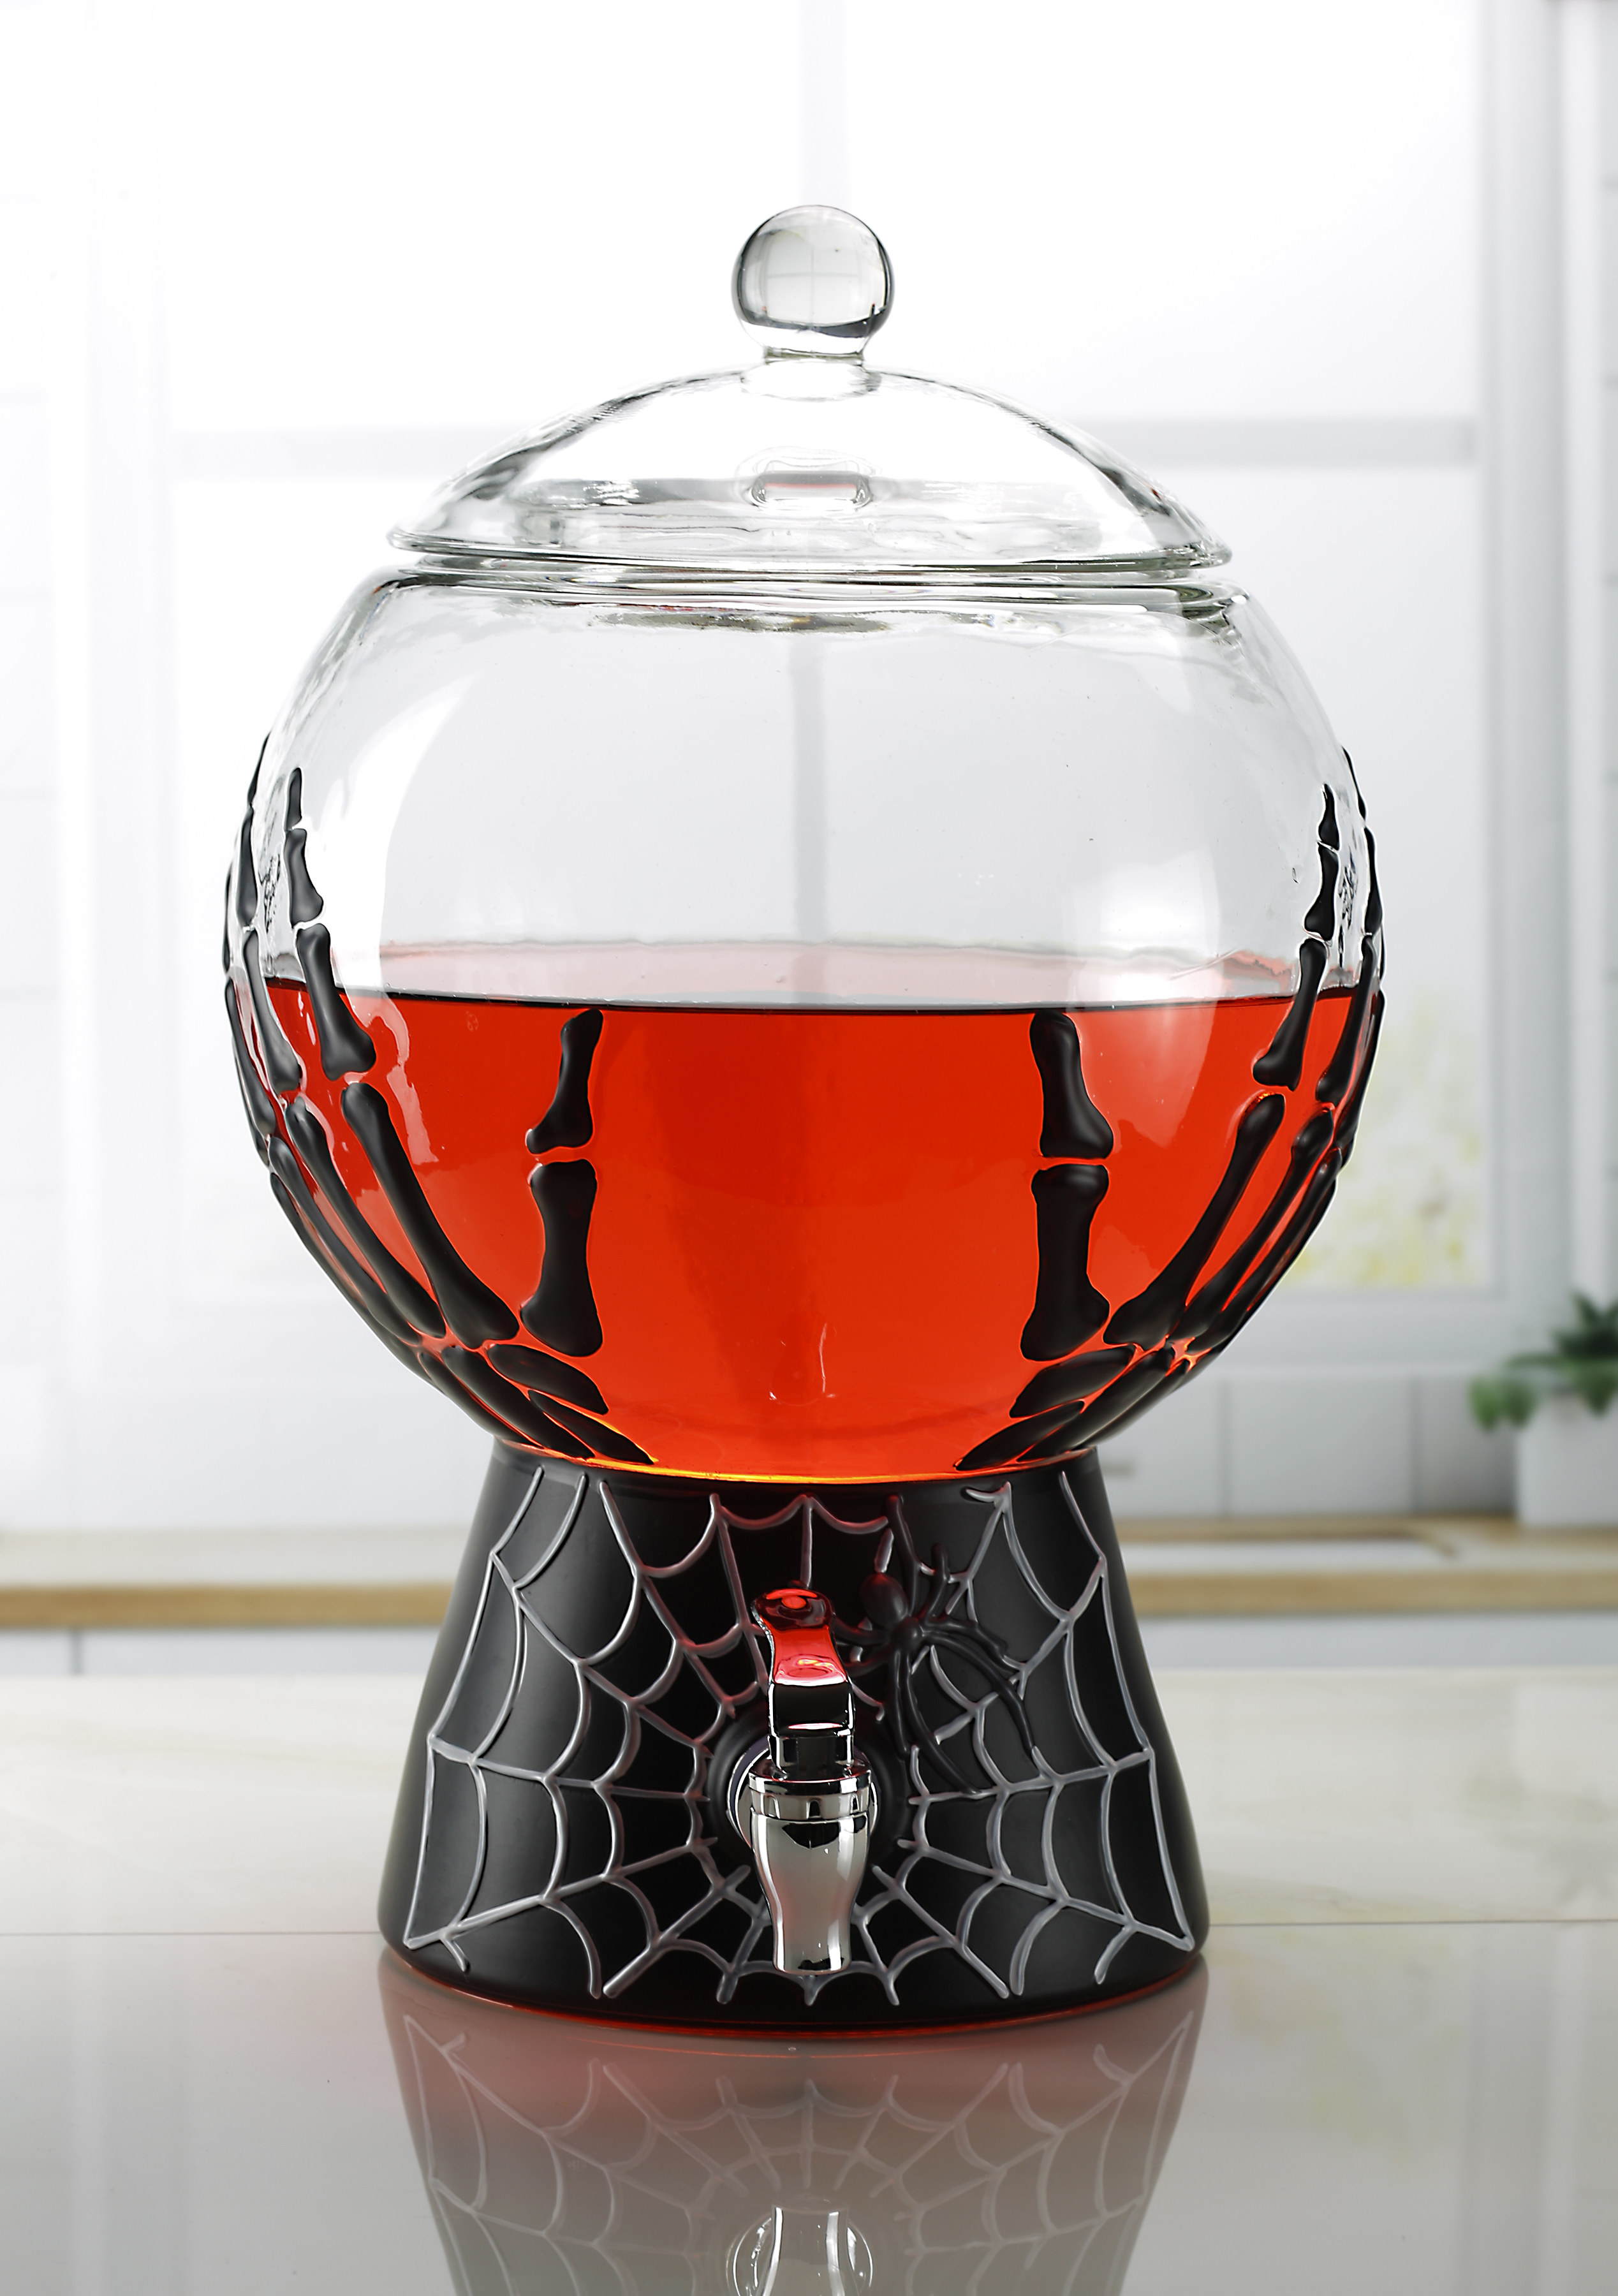 The dispenser filled with a red drink